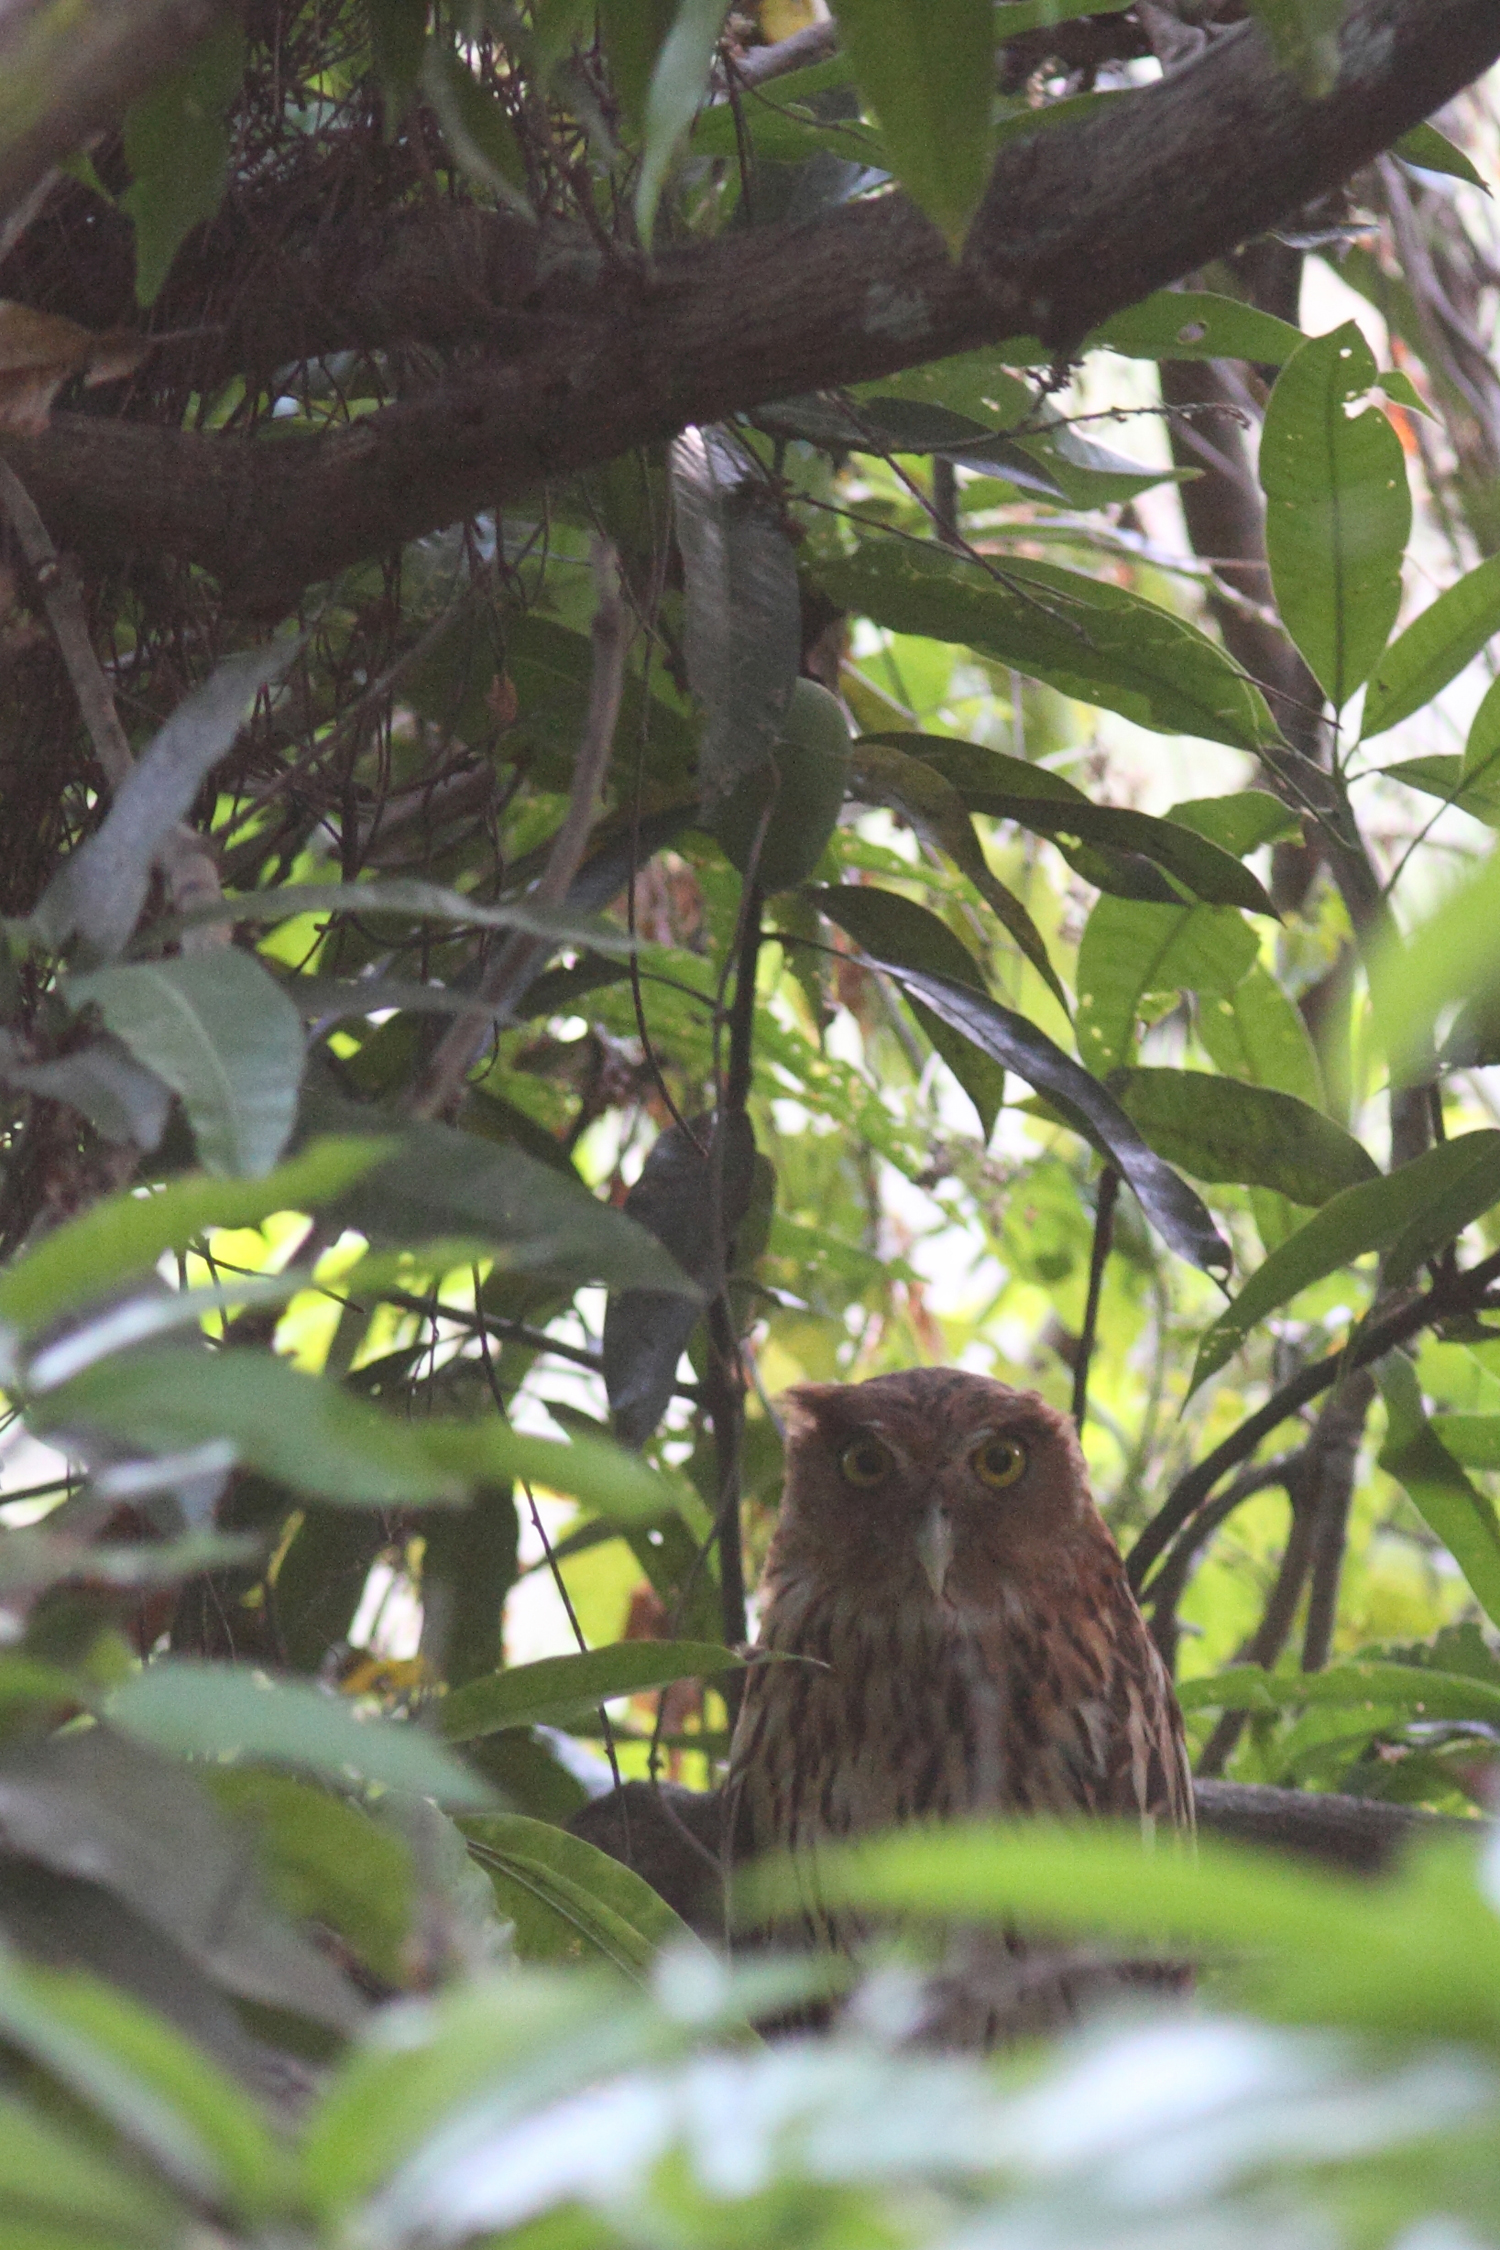 My first view of a Philippine Eagle-Owl roosting in a shady mango tree. I almost had to stand on tiptoes to photograph this bird over the leaves.